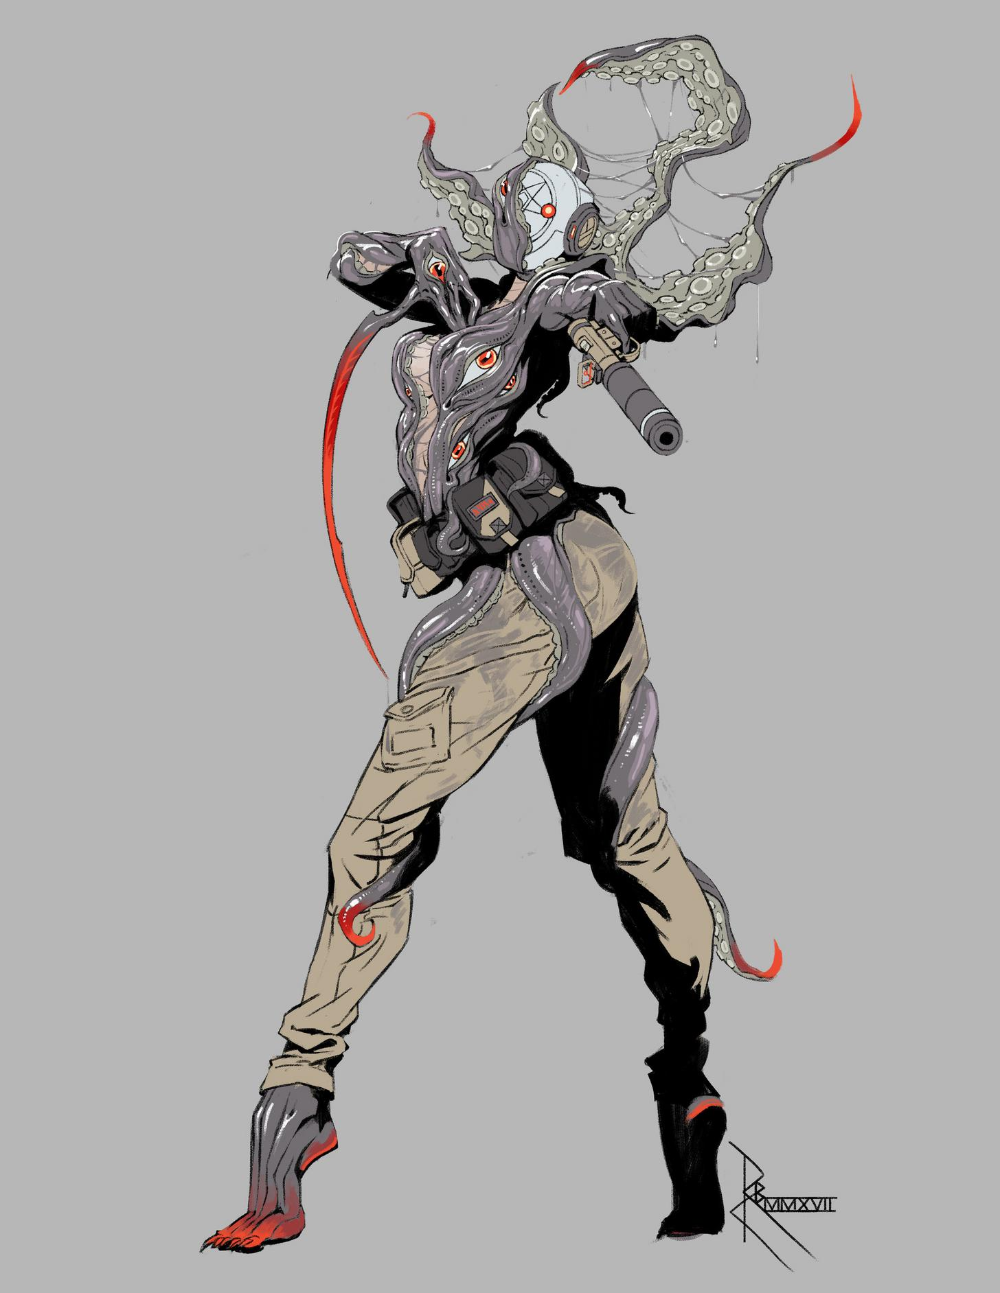 Robert Chew's concept art for a shooter game featuring 7